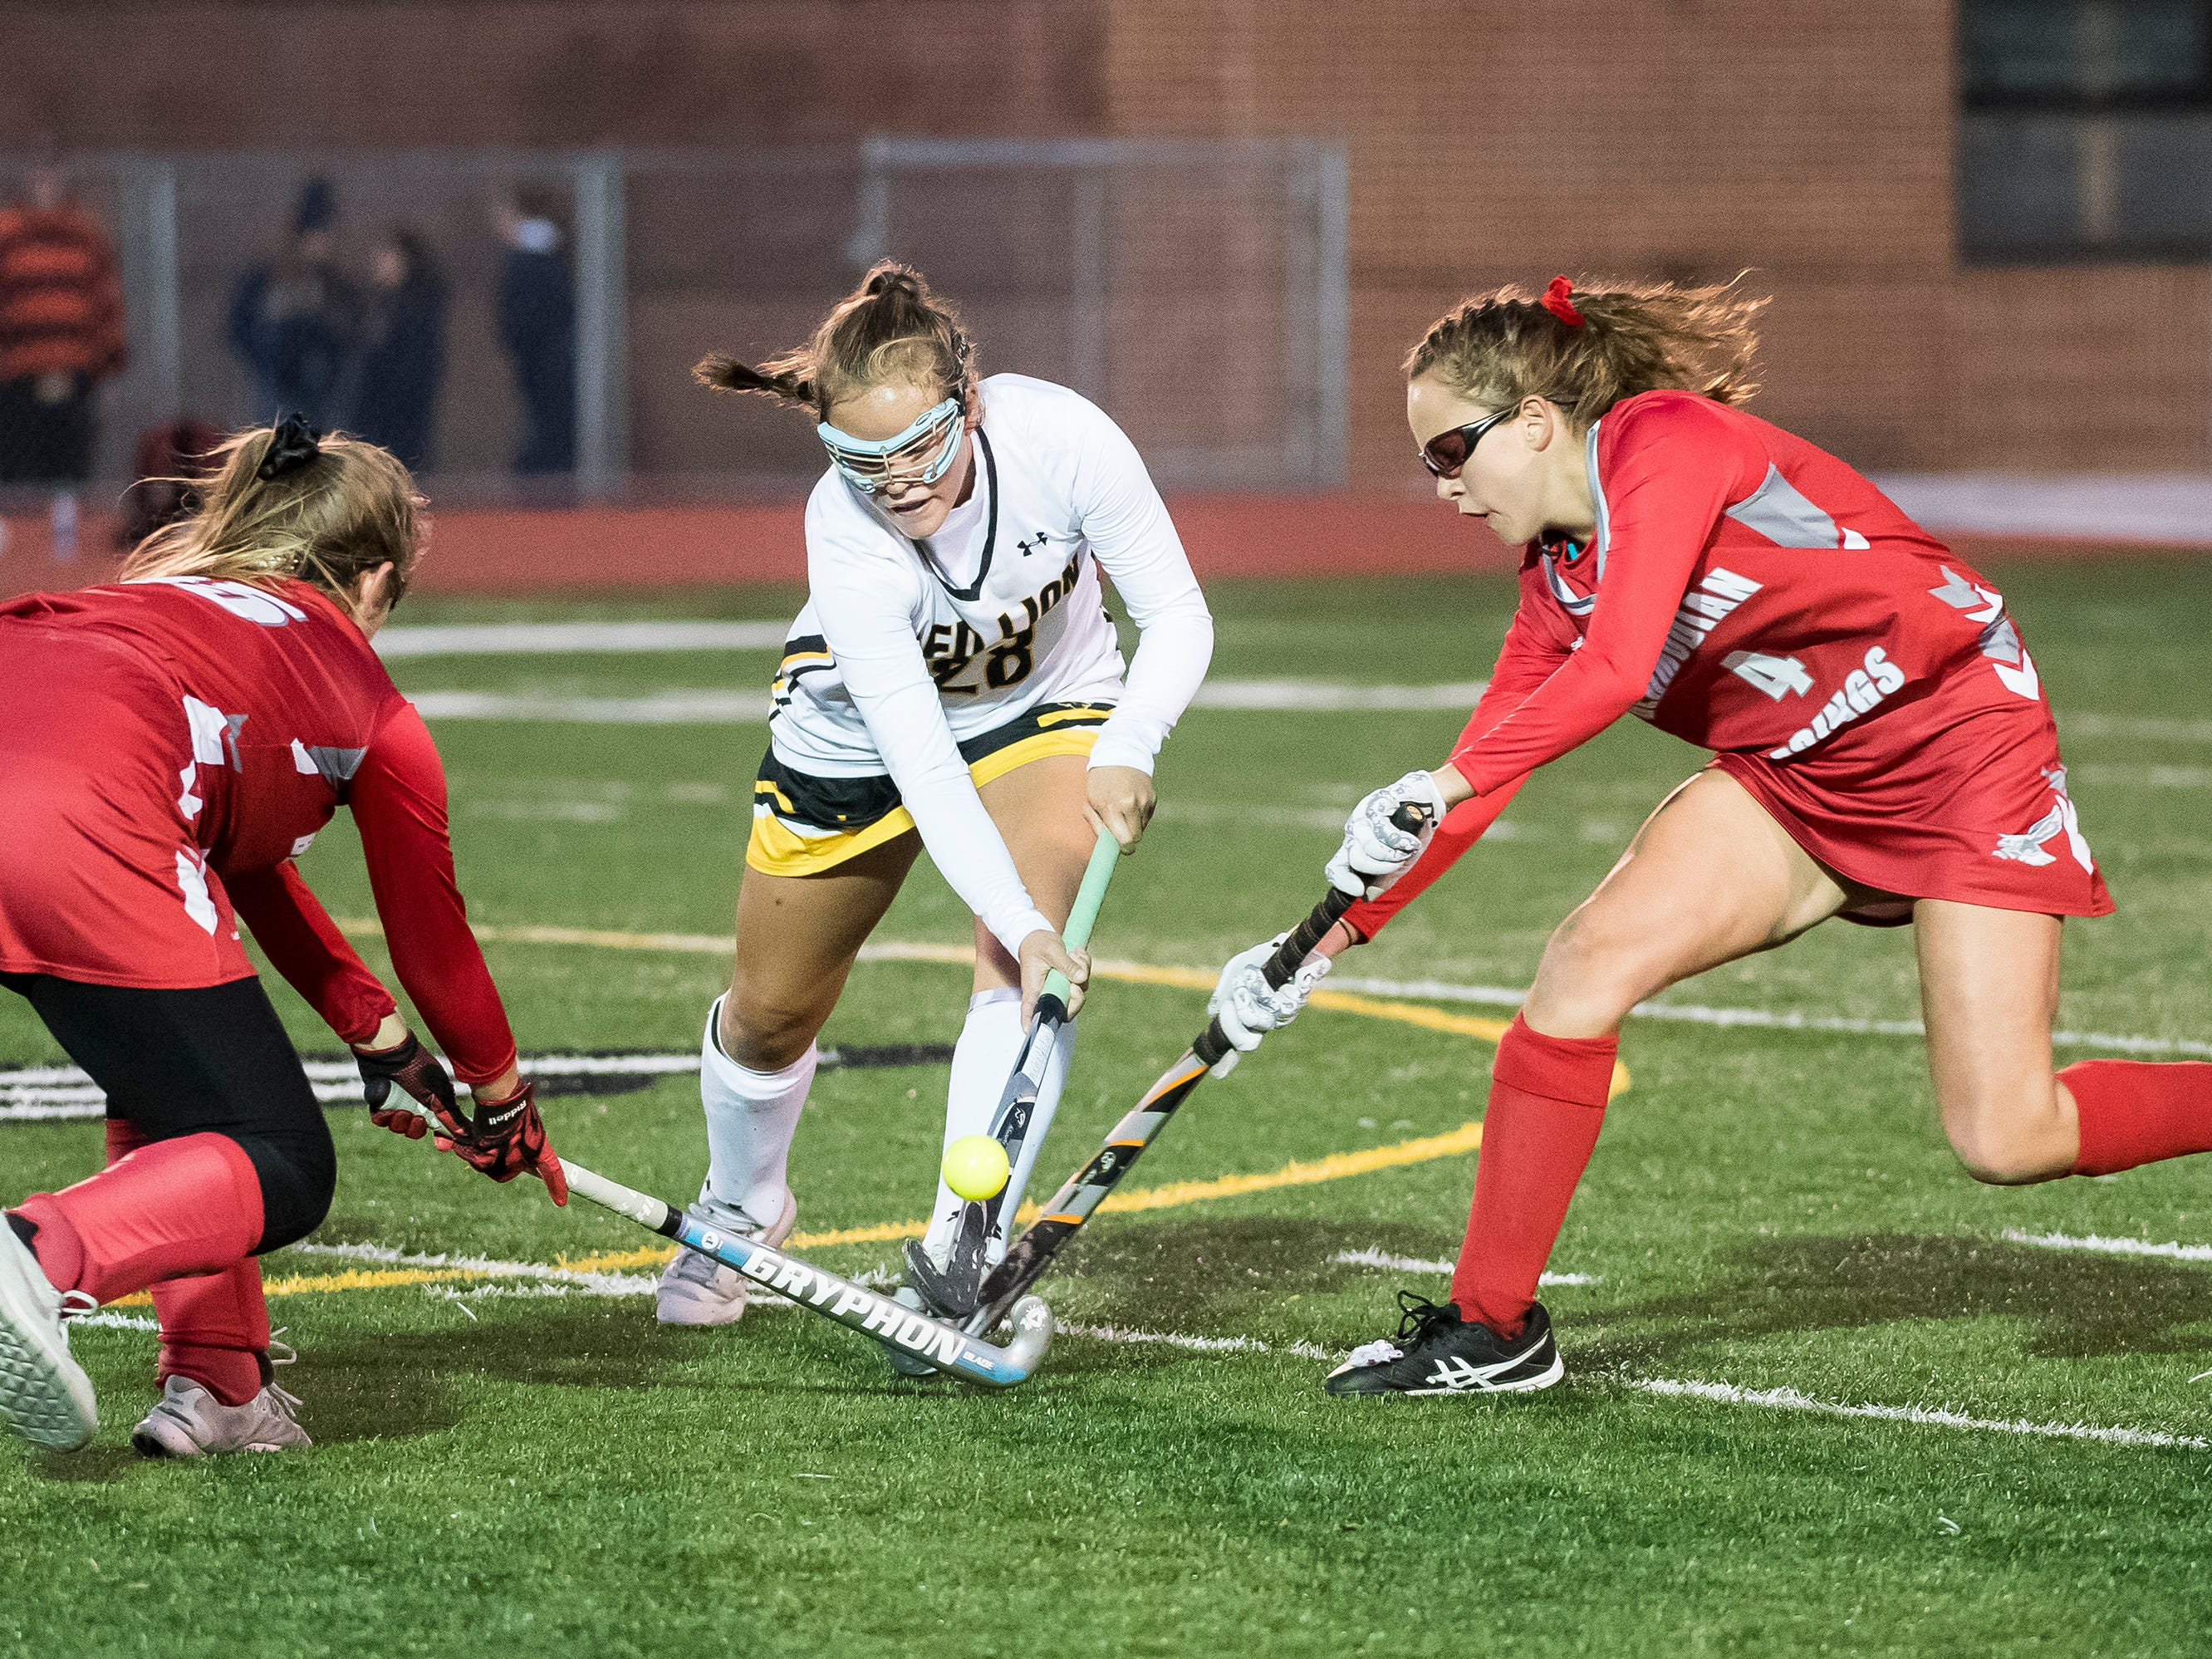 Red Lion's Coda Fisher, center, fights for possession with Bermudian Springs's Skyler West (4) and Hailey Lamo during a YAIAA tournament semifinal game on Thursday, October 18, 2018. The Lady Lions fell 2-0.